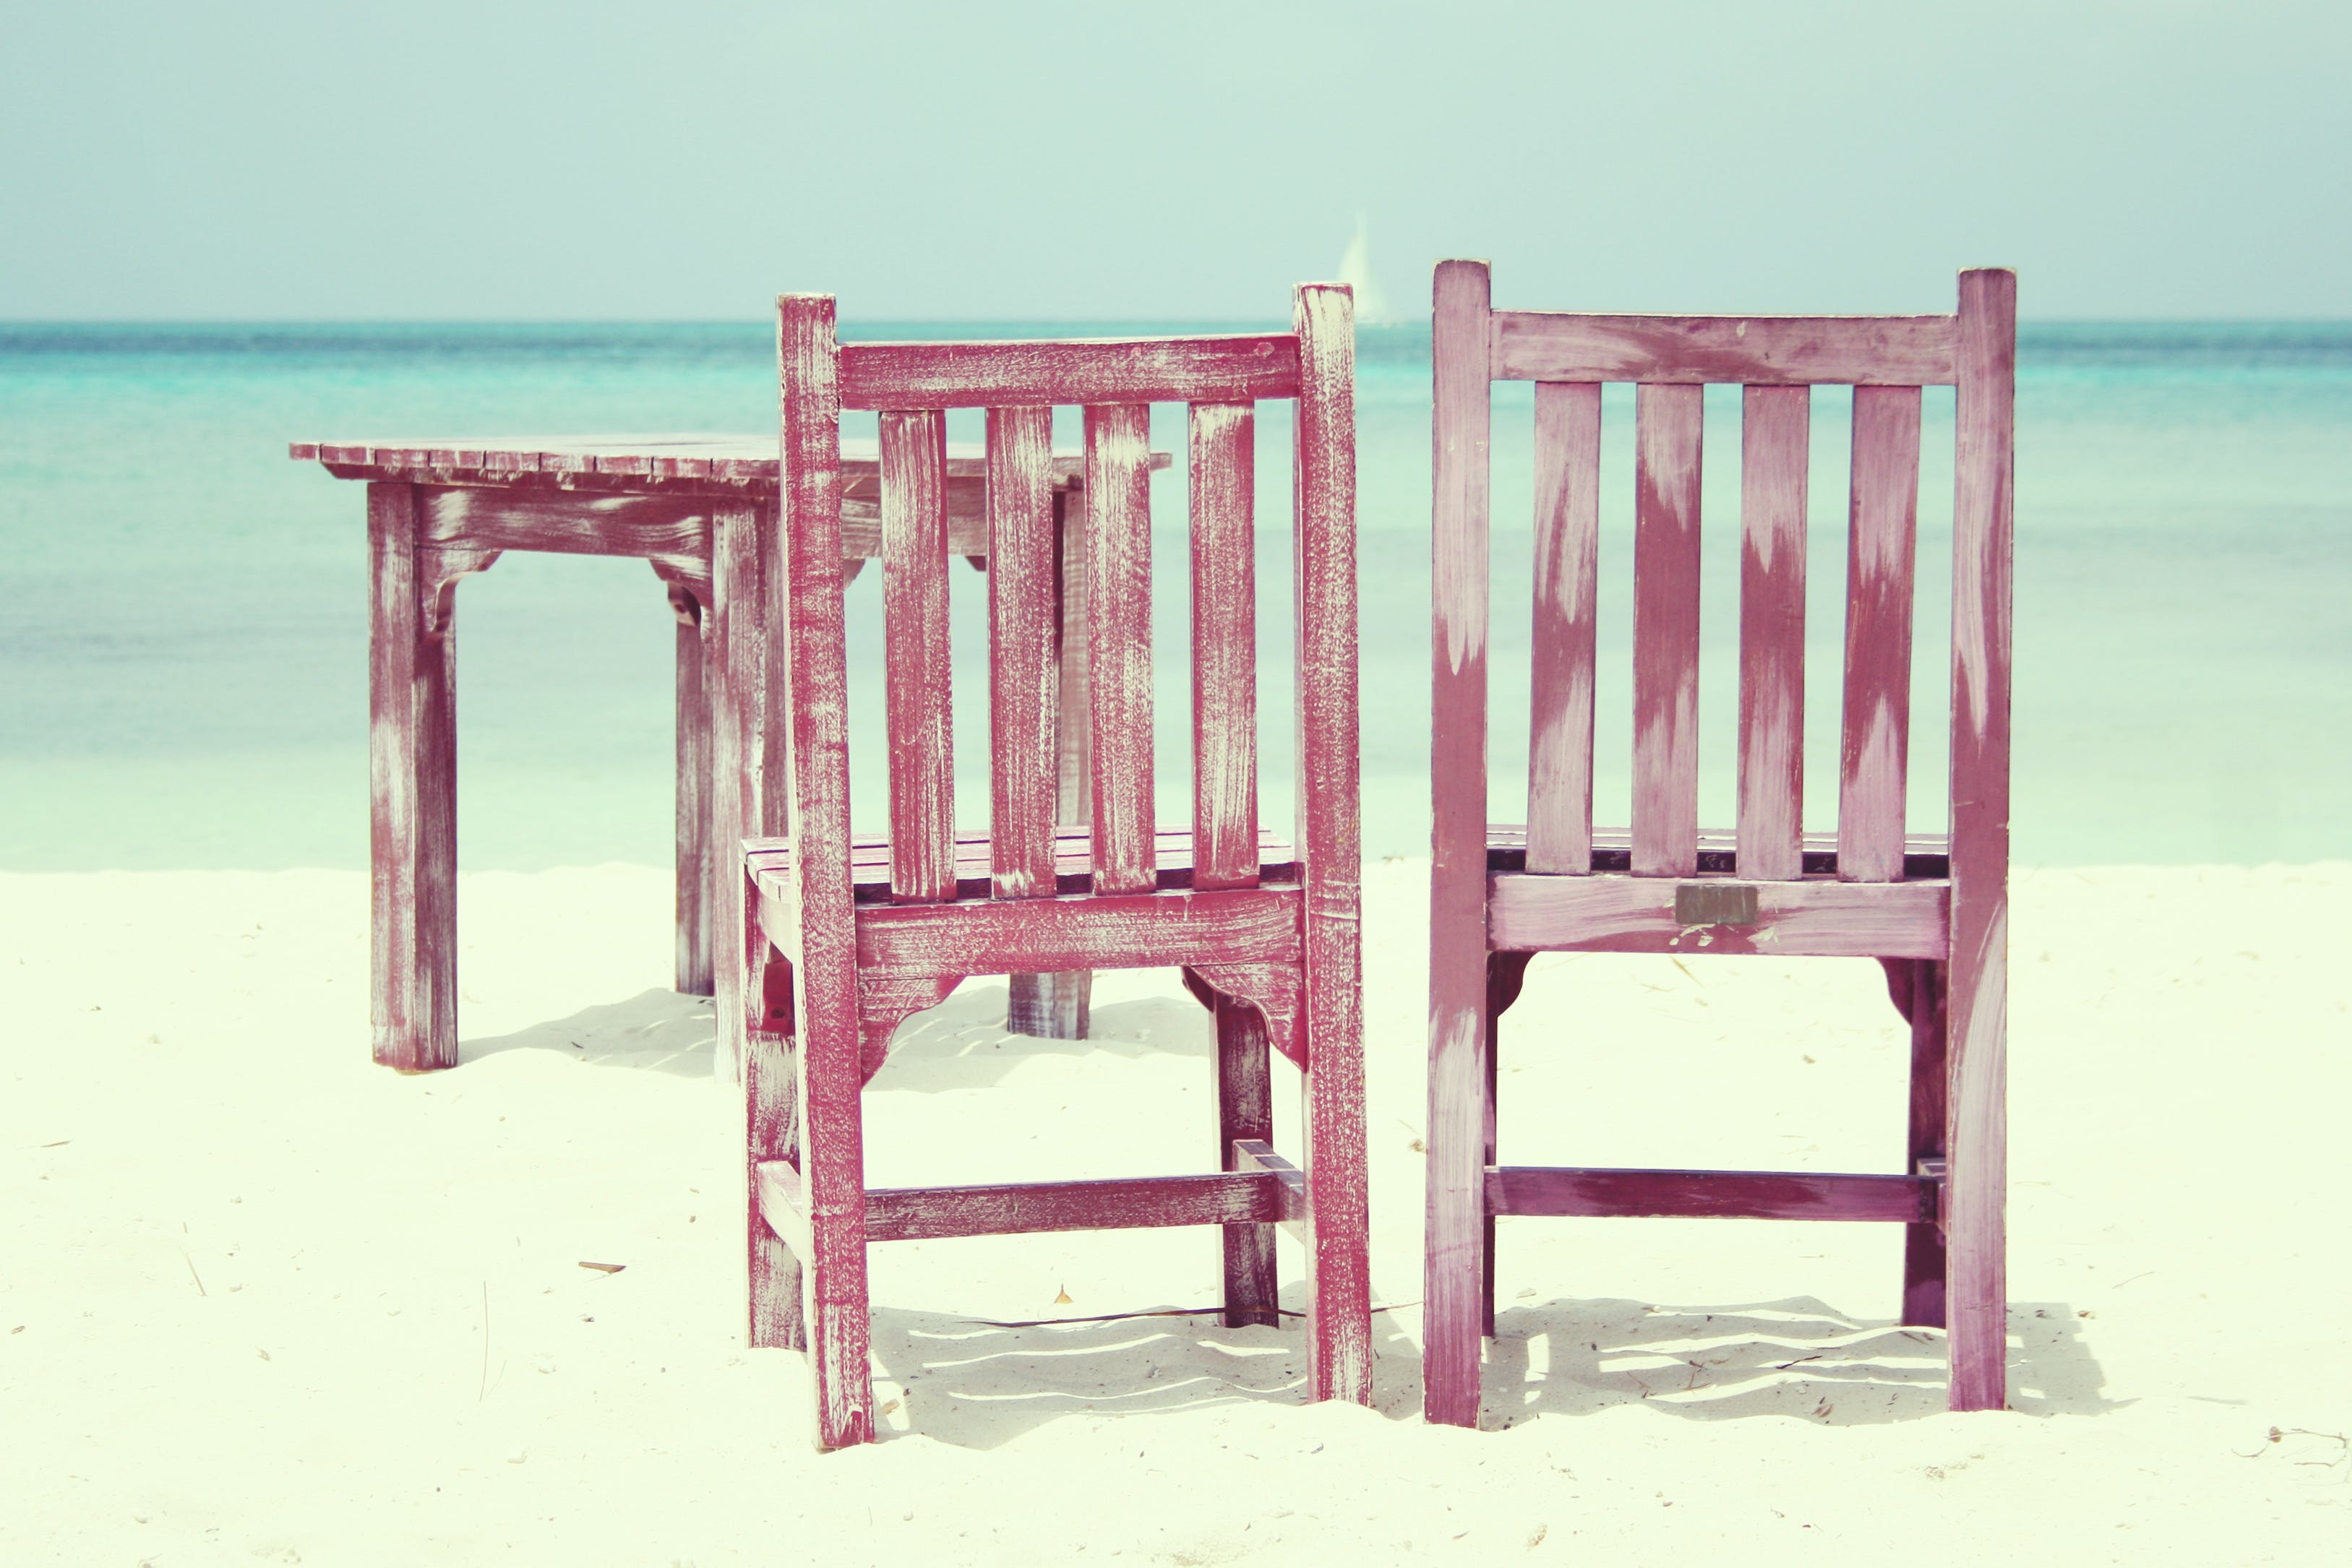 Table and Two Chairs on Beach Shore